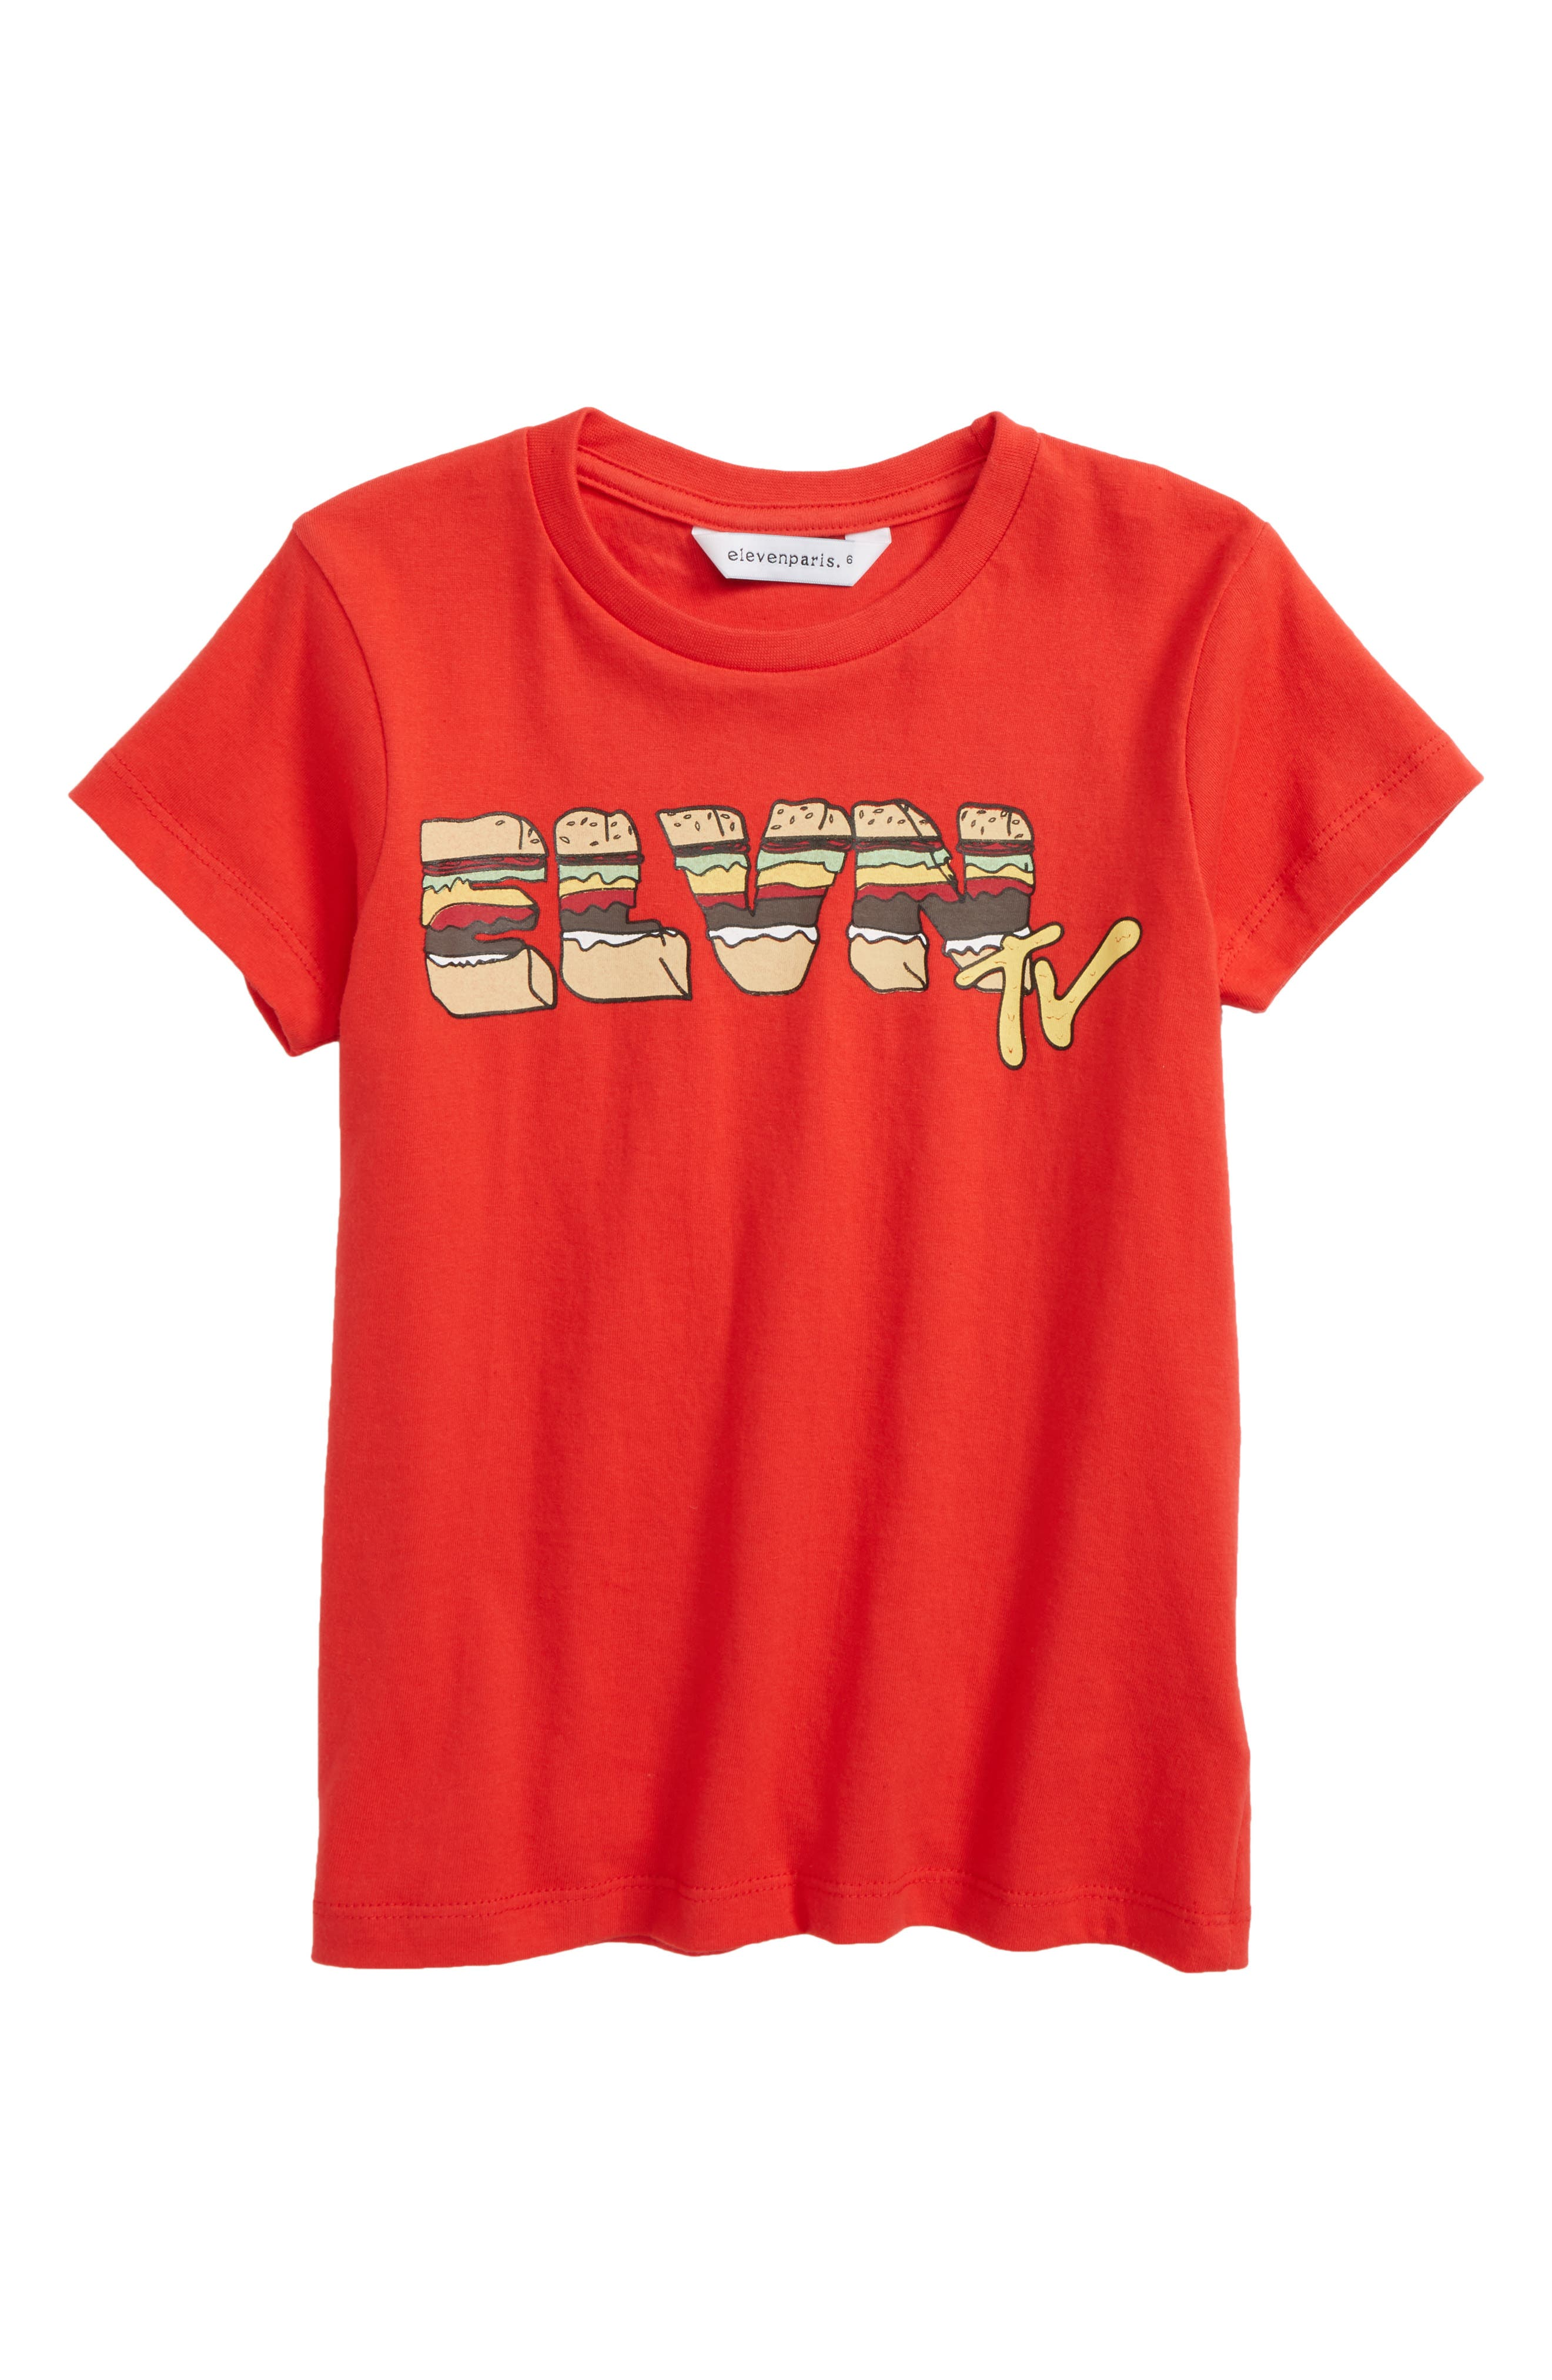 HTV T-Shirt,                         Main,                         color, Red